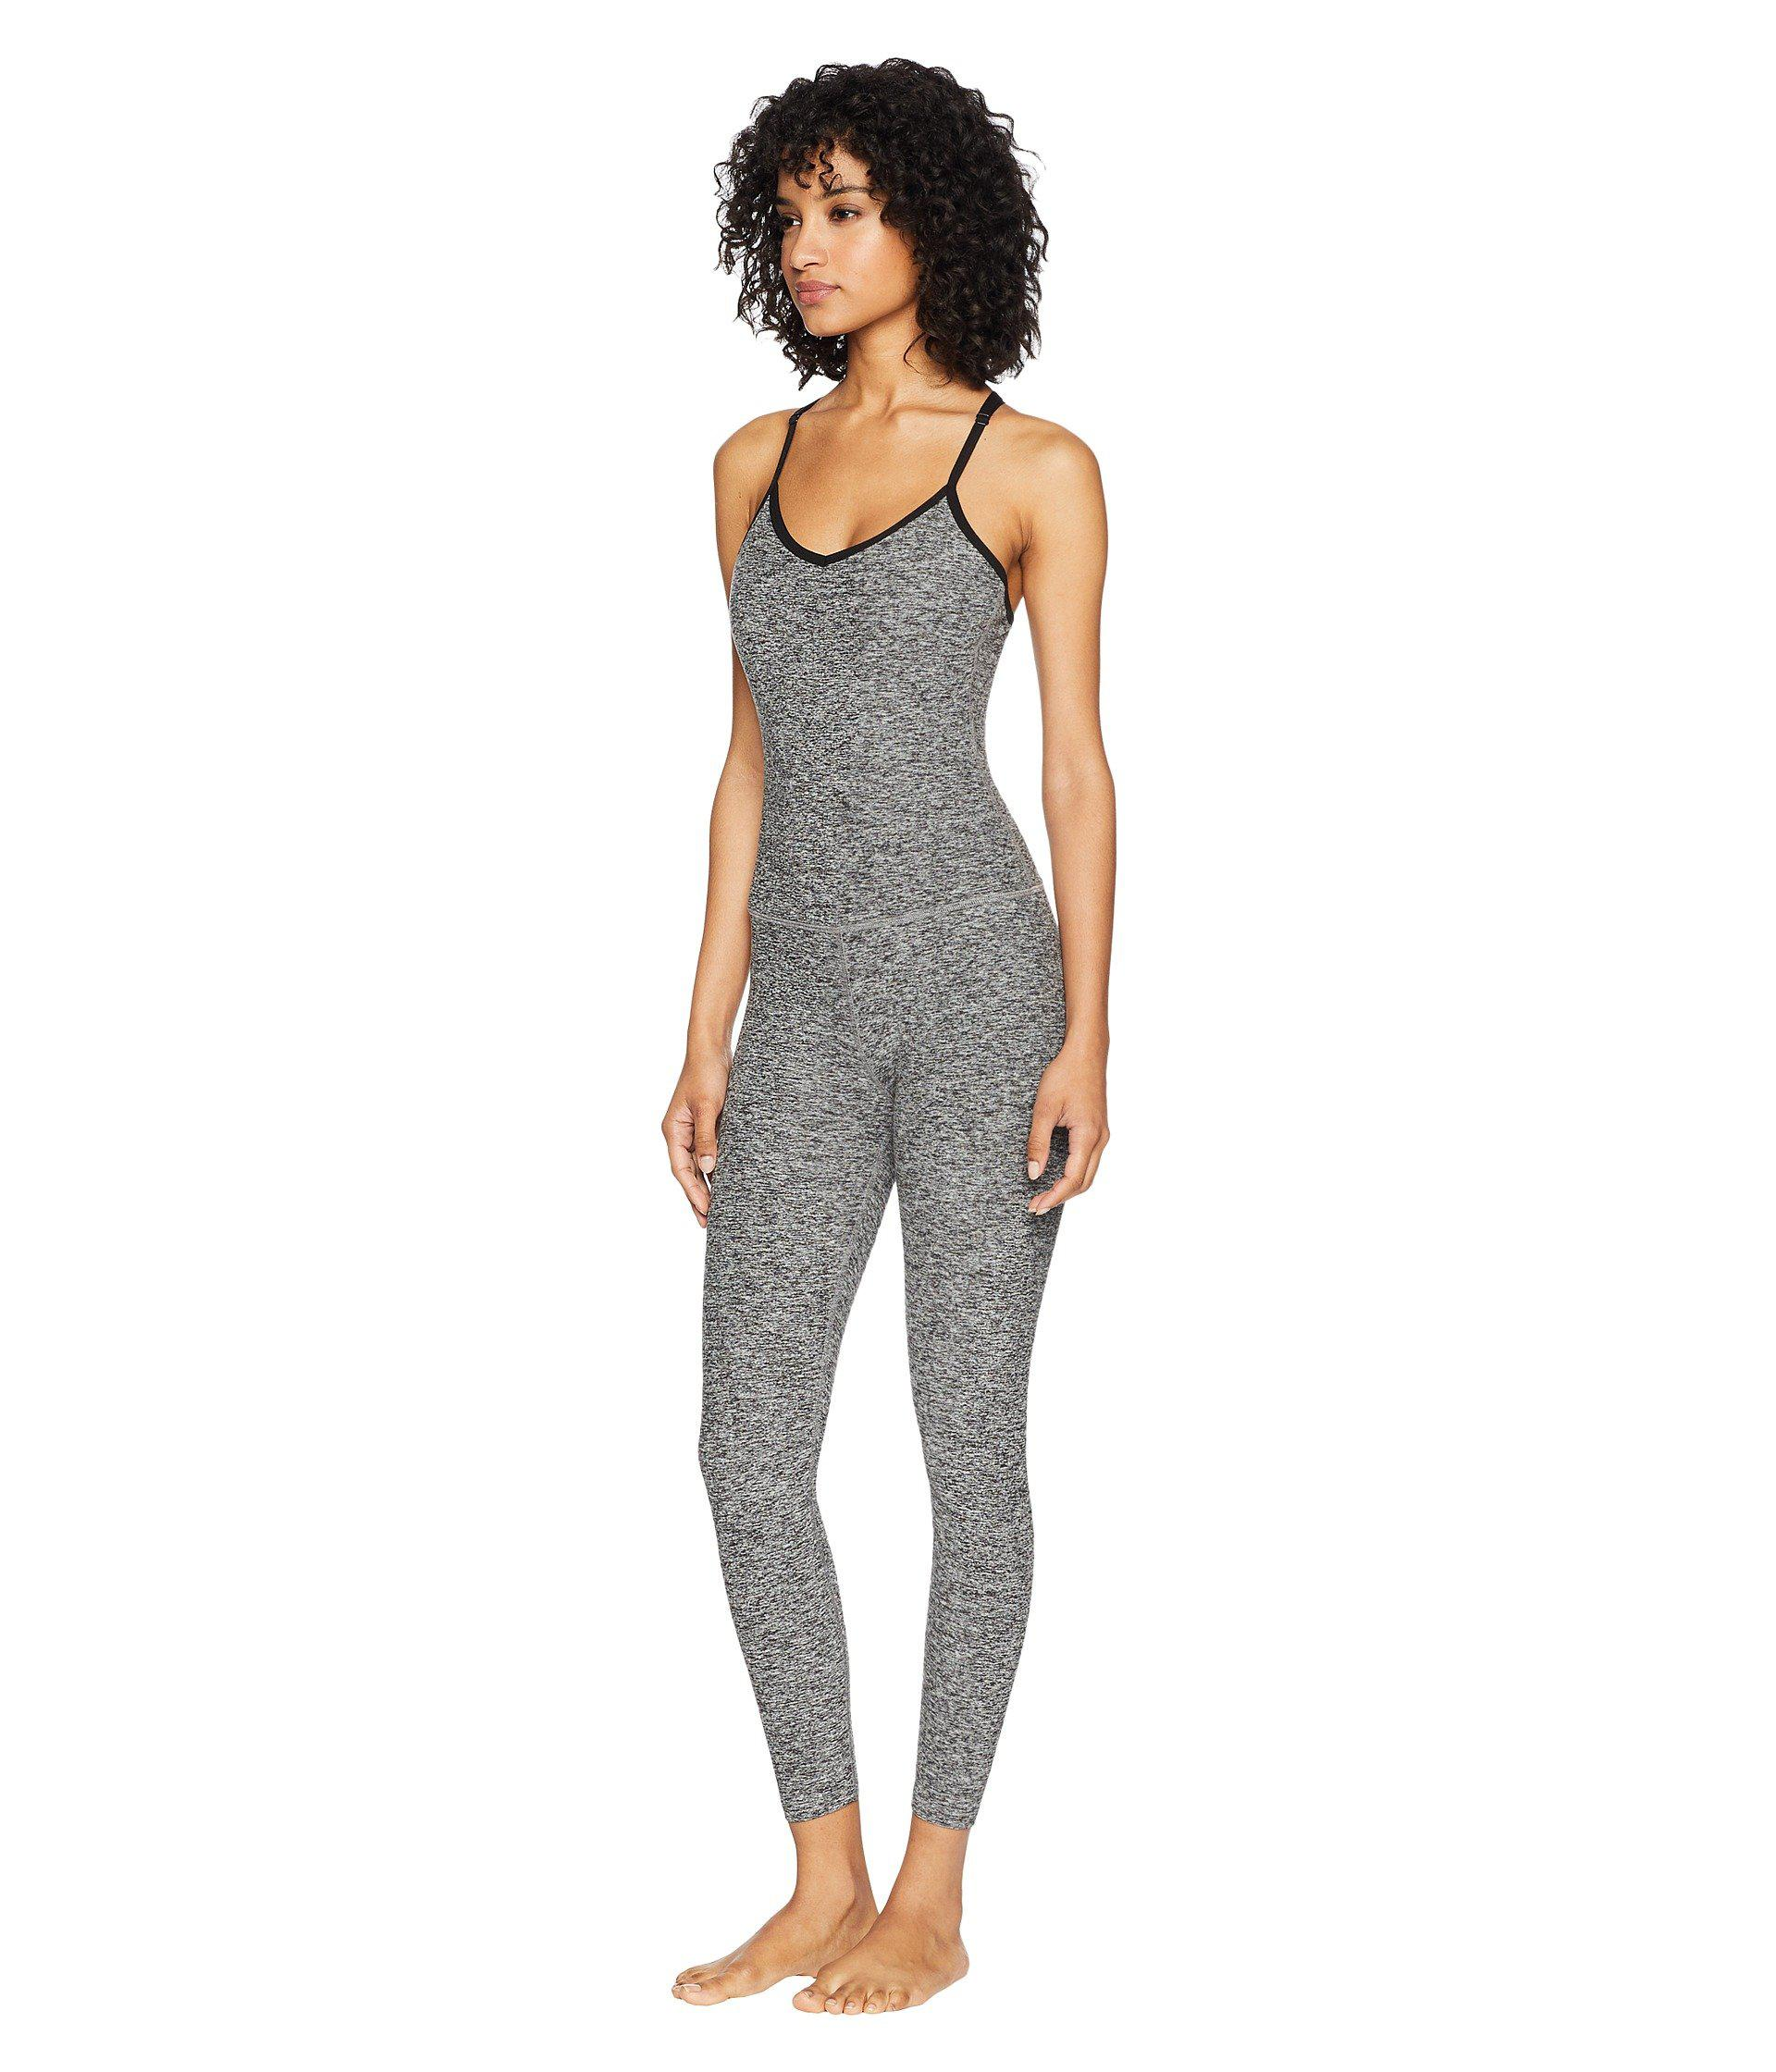 c101a6635d57 Lyst - Beyond Yoga Spacedye Elevation Capris Bodysuit (black white) Women s  Jumpsuit   Rompers One Piece in Black